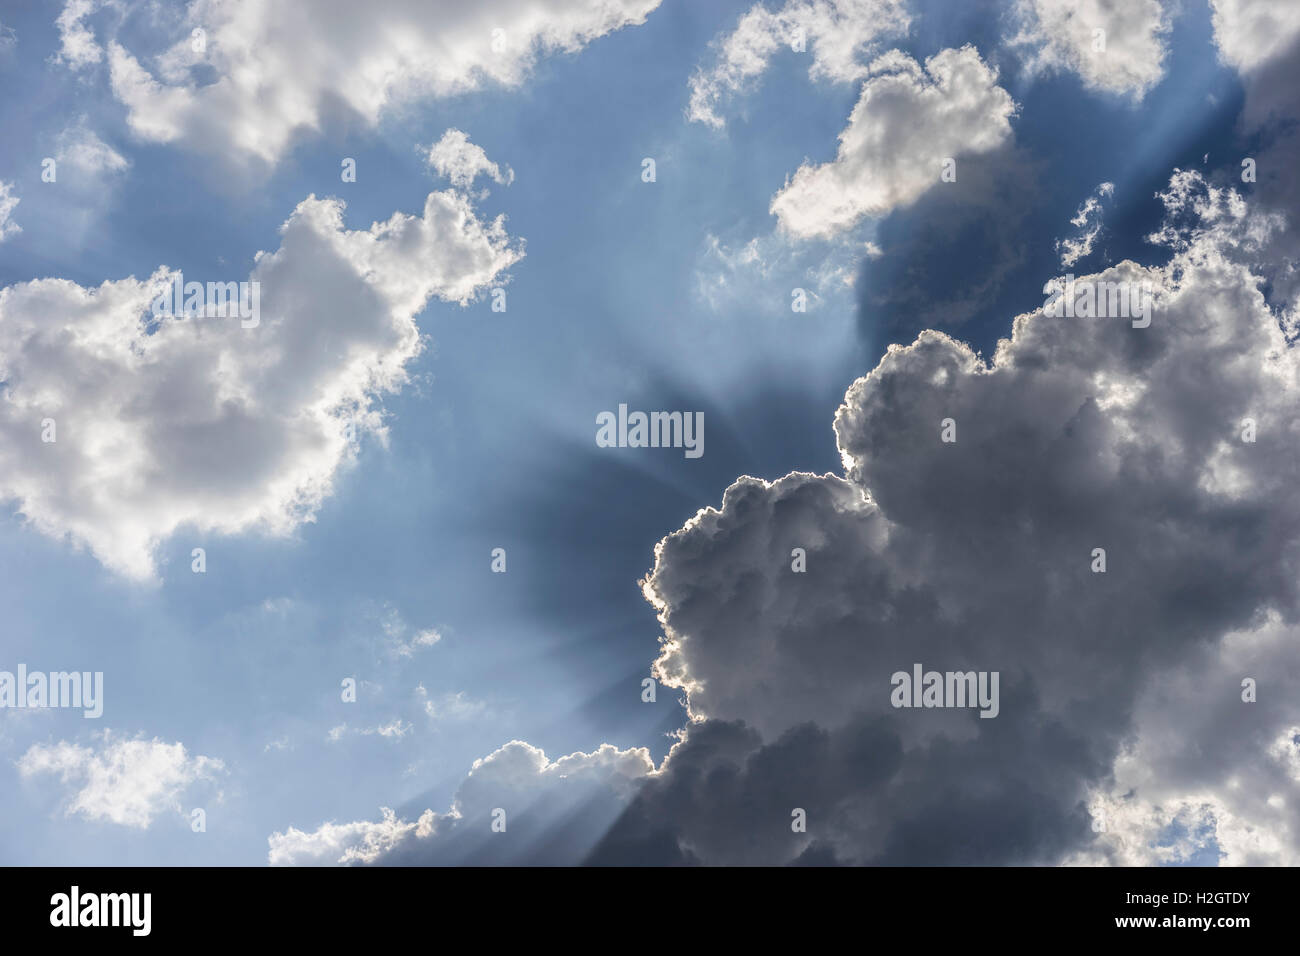 Dark clouds, rain clouds with concealed Sun and sunbeams - Stock Image